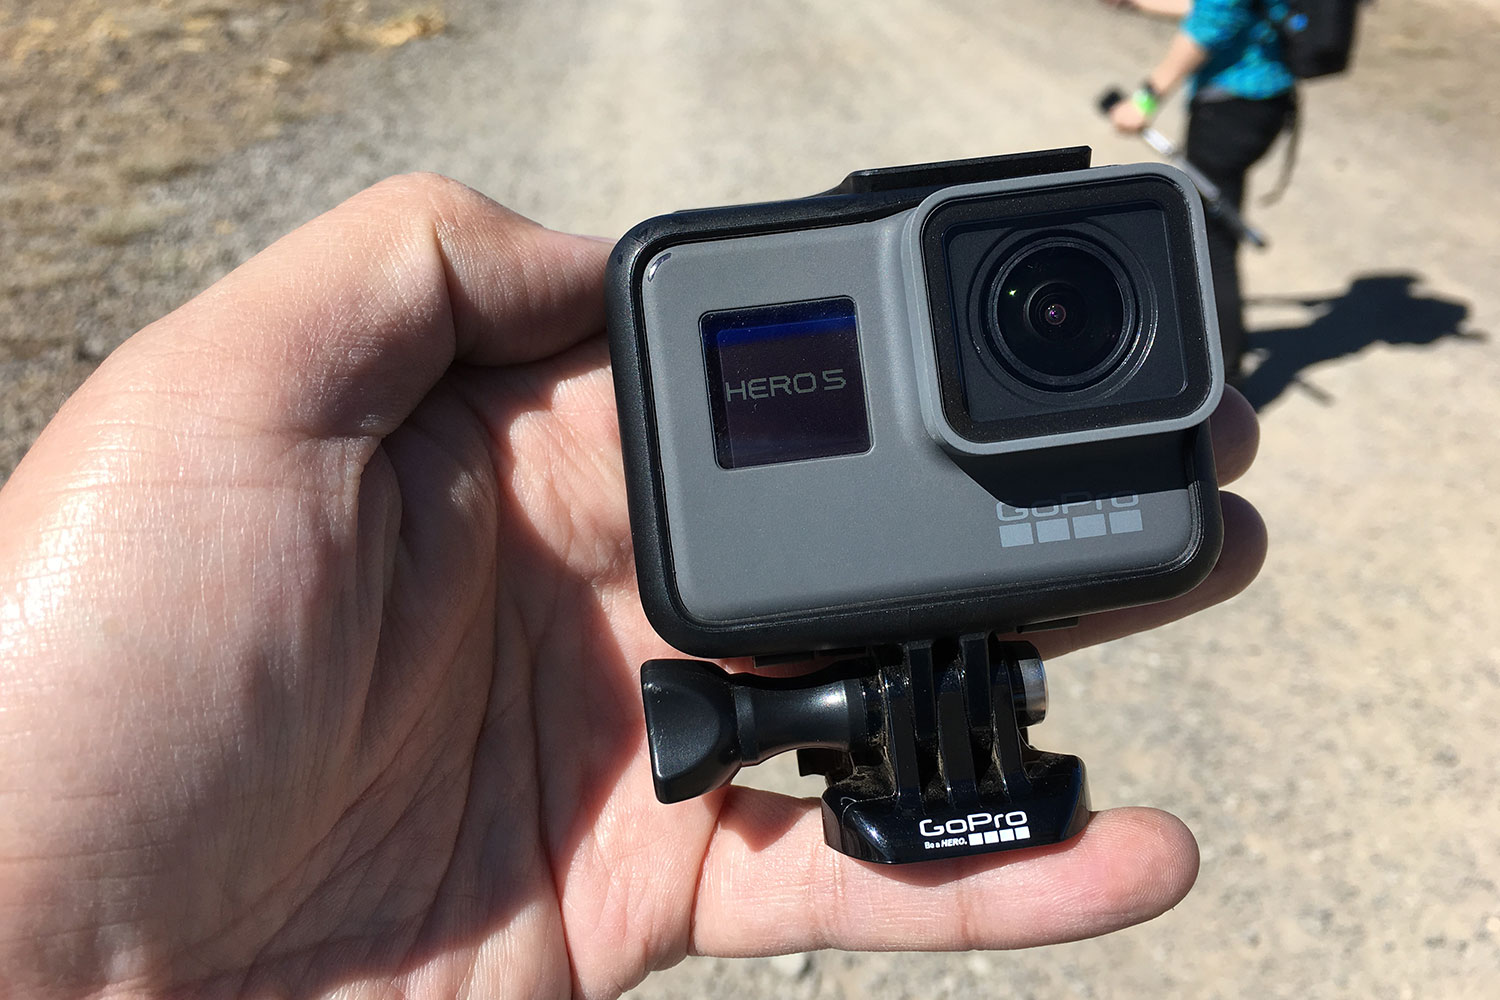 GoPro Stock Goes Lower On Q4 Sales Miss, Weak Guidance